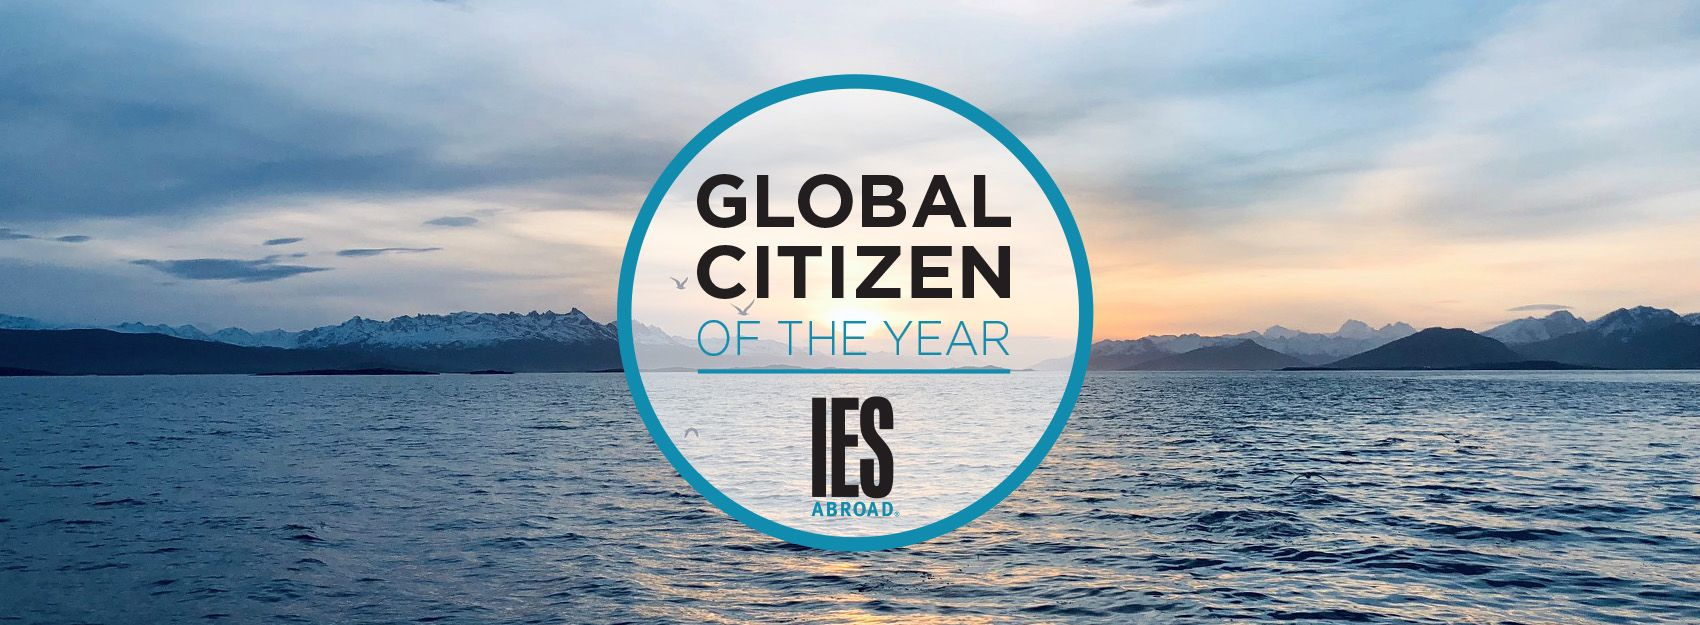 global citizen of the year logo on top of a scenic background with water